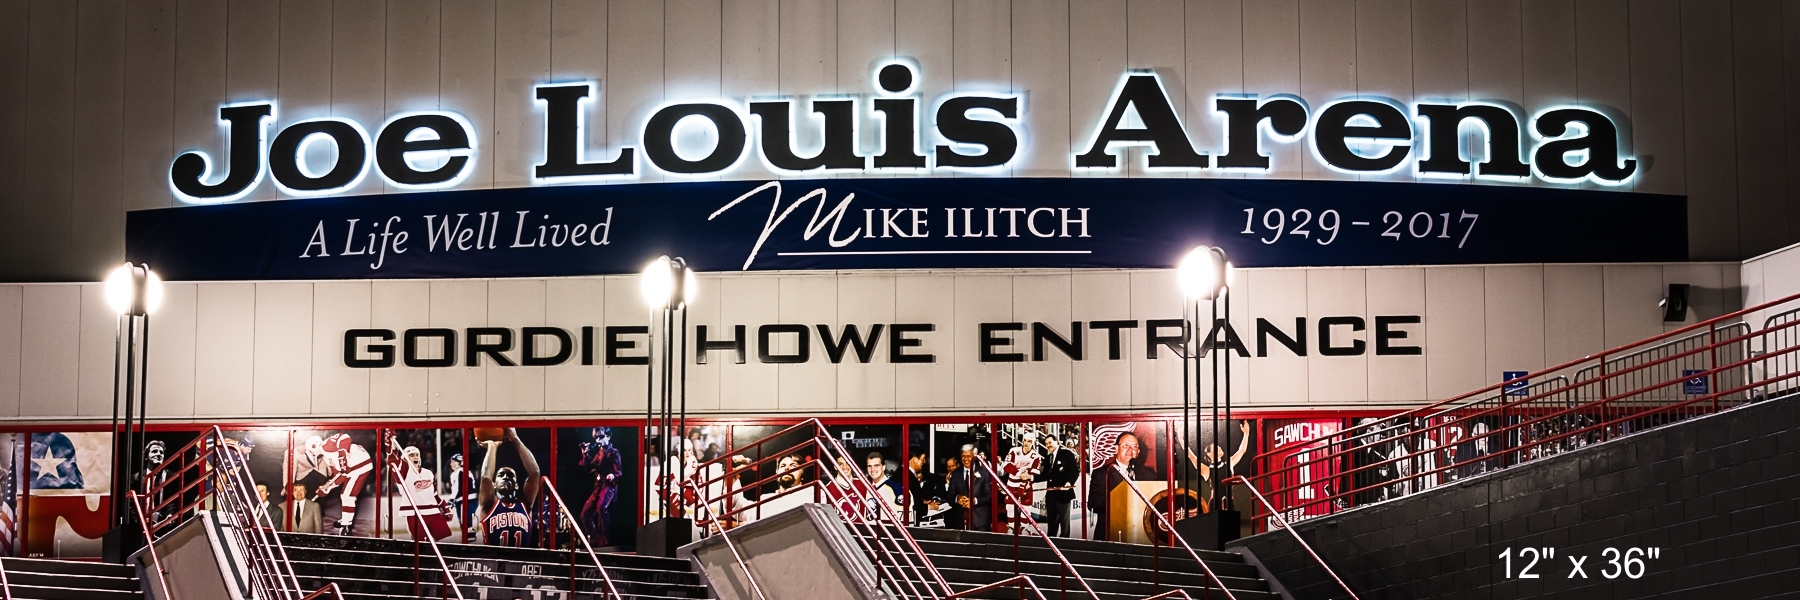 Detroit Sports Joe Louis Arena - Gordie Howe Entrance